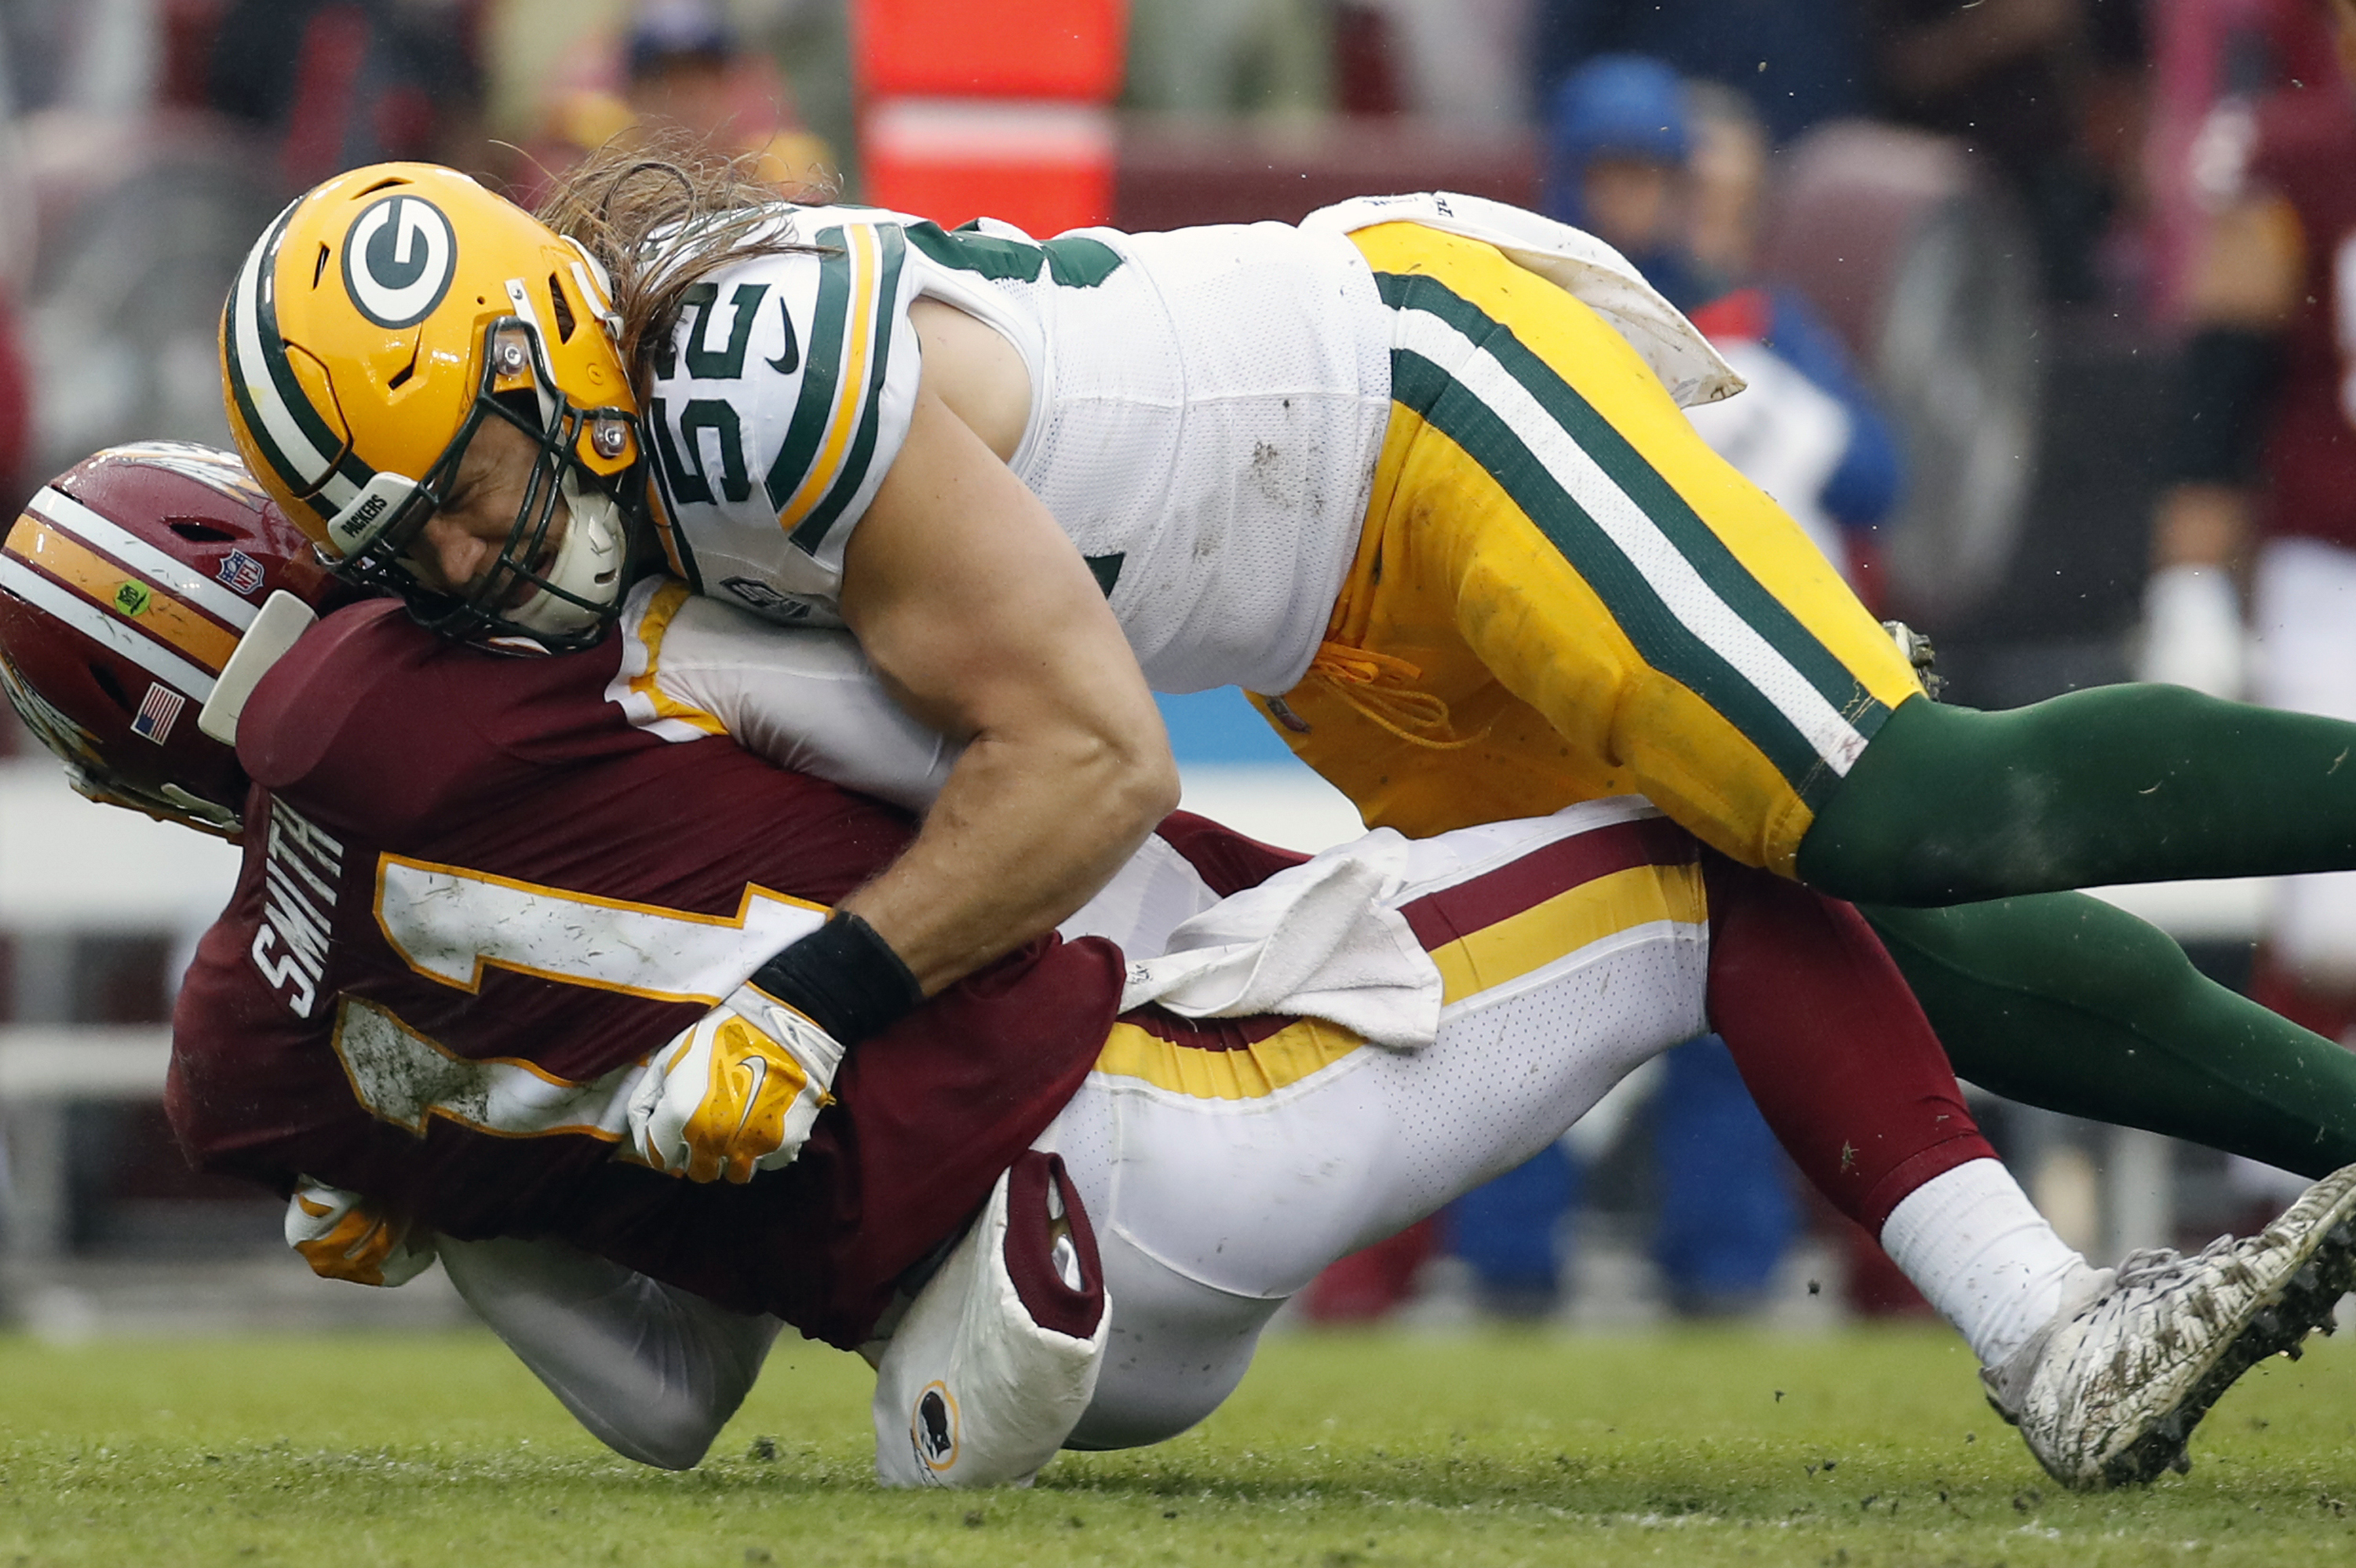 info for a0625 62a61 Penalty on Clay Matthews' Textbook Hit Embroils NFL in ...